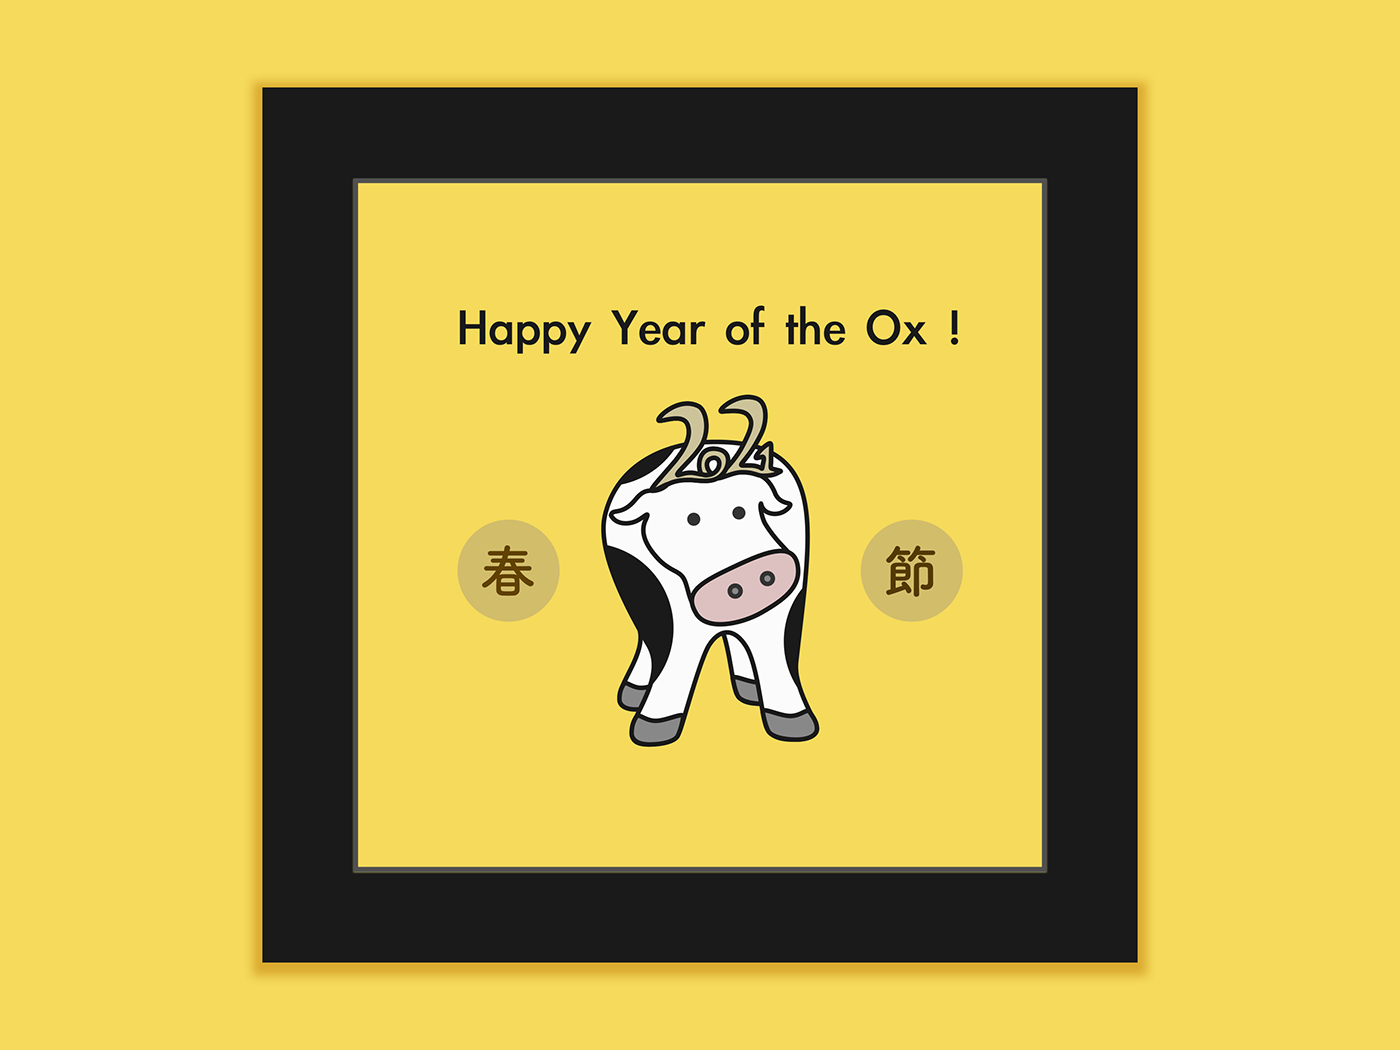 chinese new year chinese new year 2021 cny Lunar New Year new year ox spring festival Year of the Ox